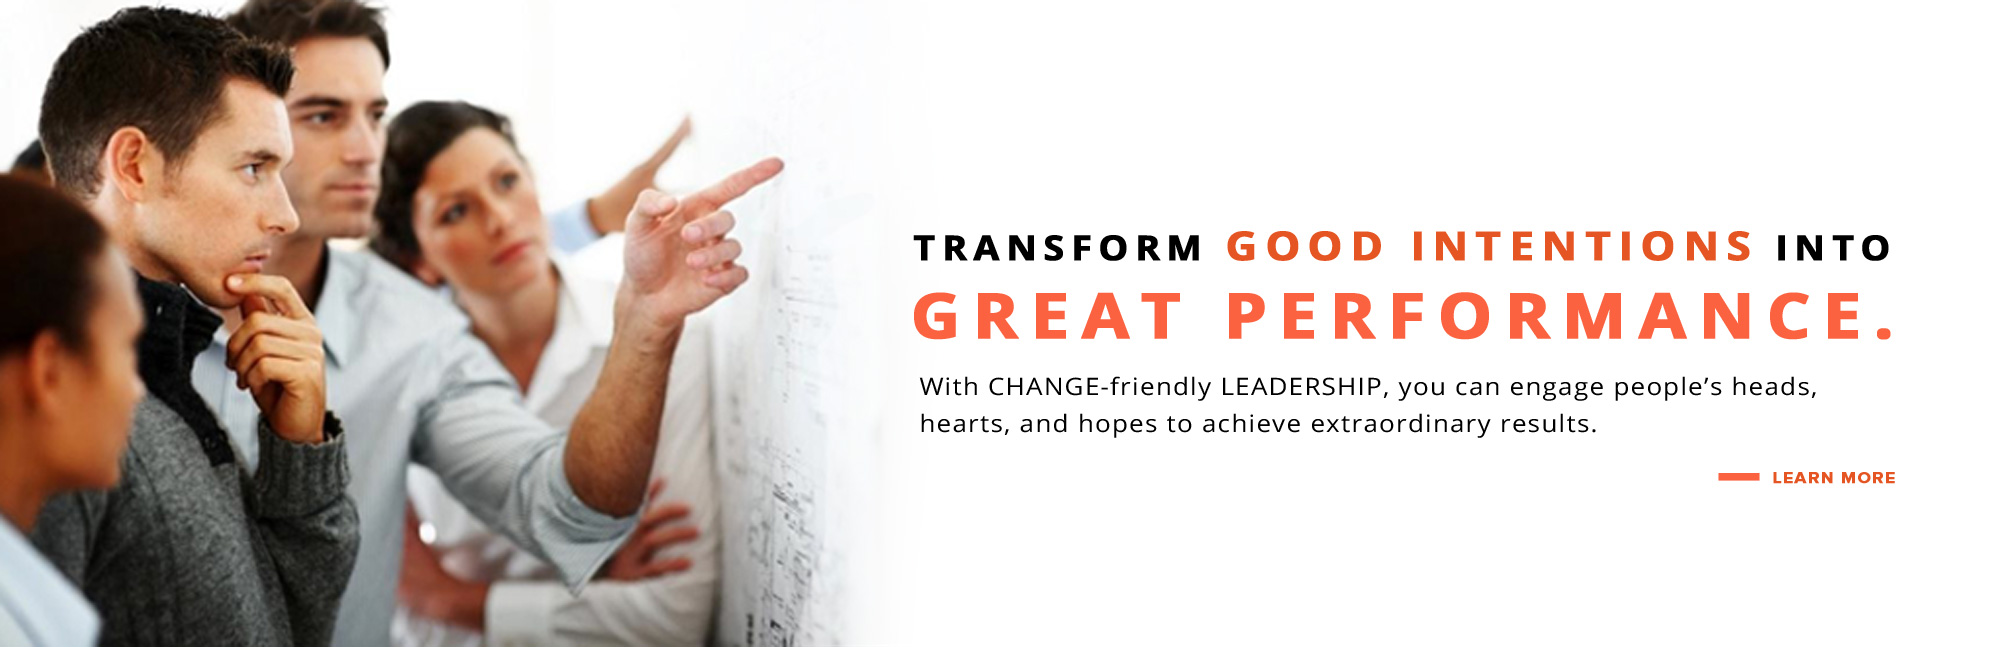 Transform good intentions into Great Performance